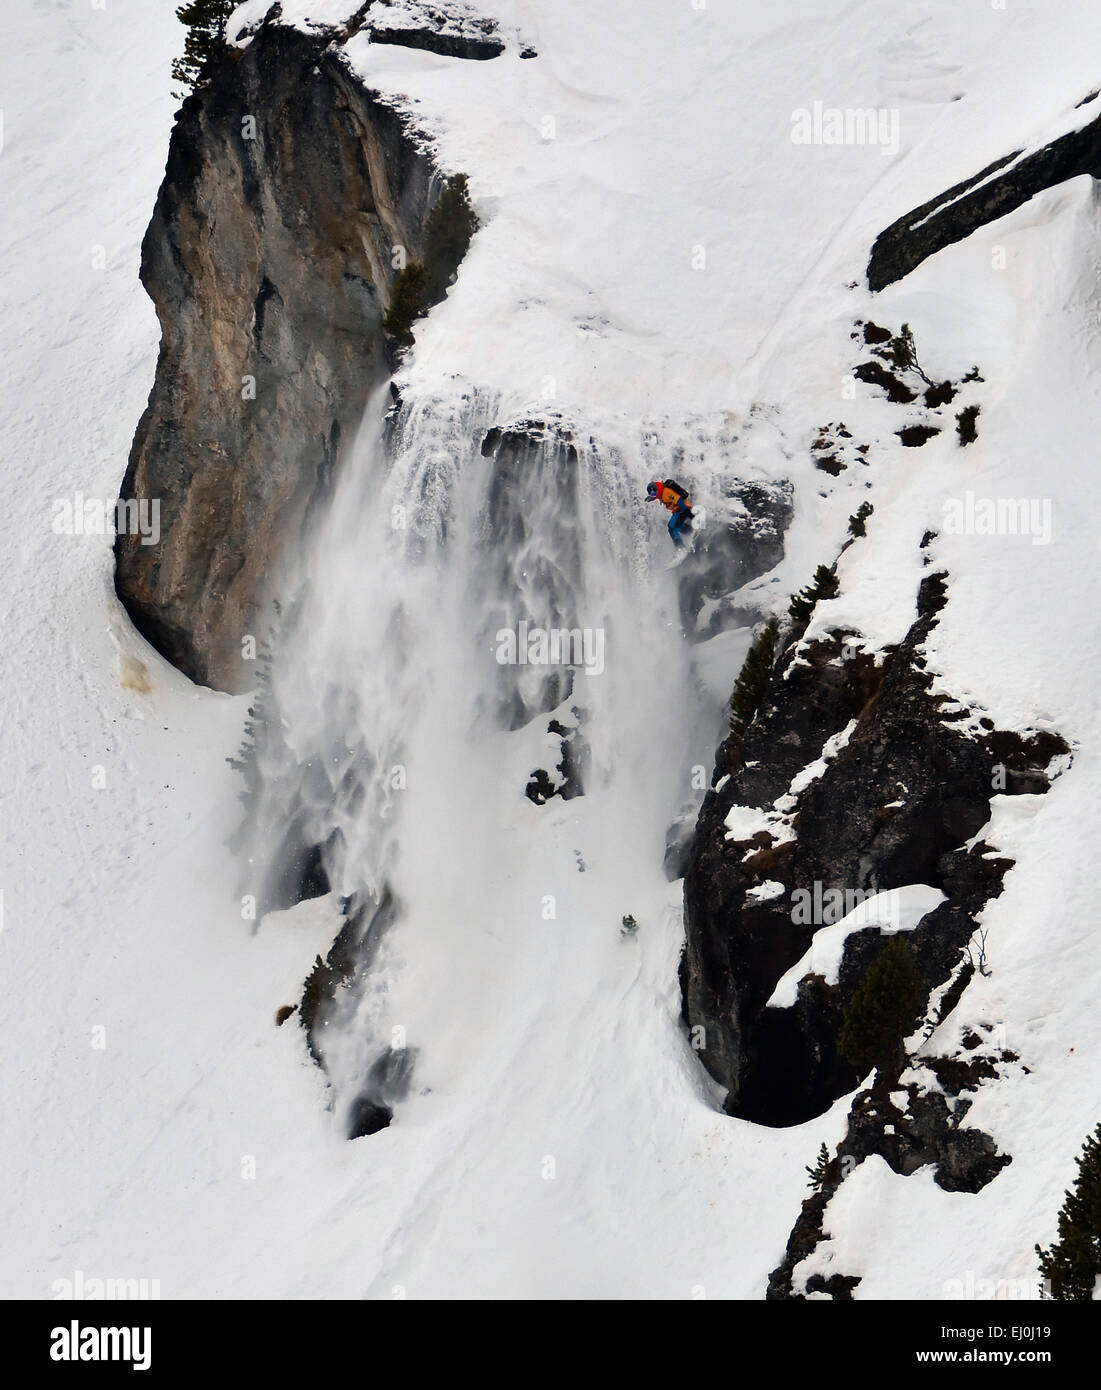 NENDAZ, SWITZERLAND - MARCH 15: 3rd place Chris CHARLET (SUI) over a cliff in the Nendaz Freeride snowboard  Finals: Stock Photo